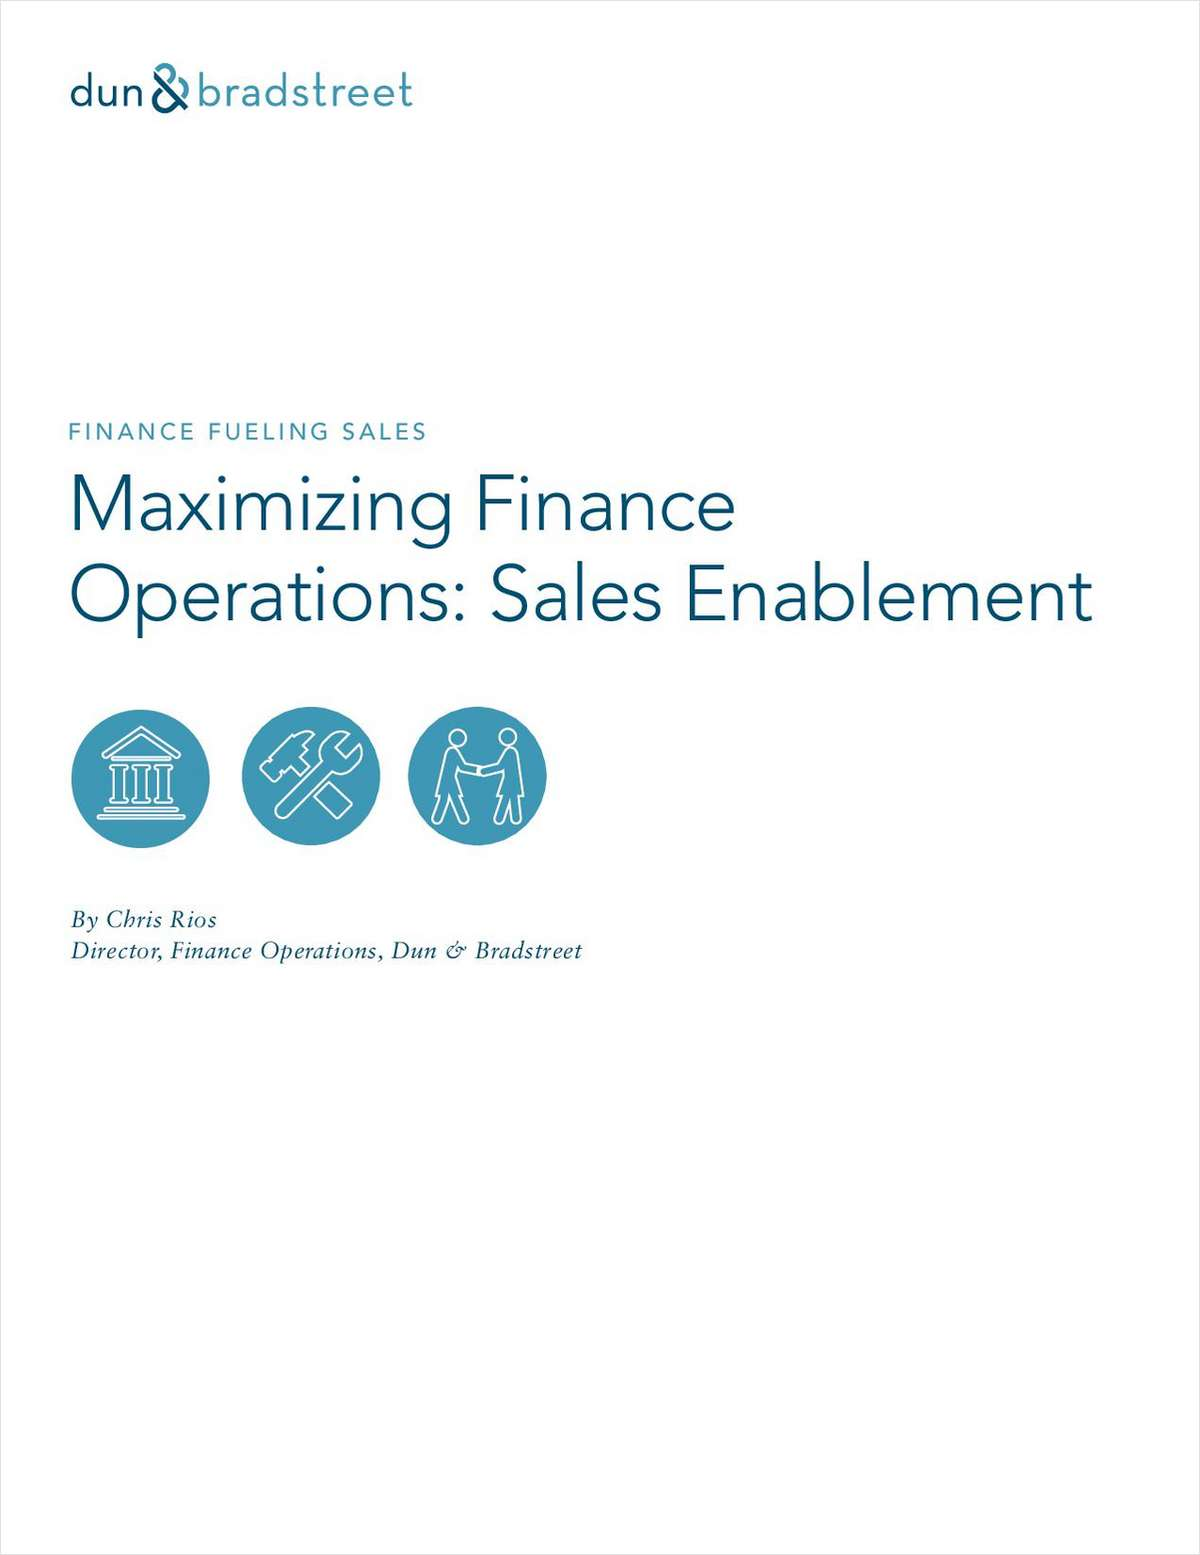 Maximizing Finance Operations: Sales Enablement